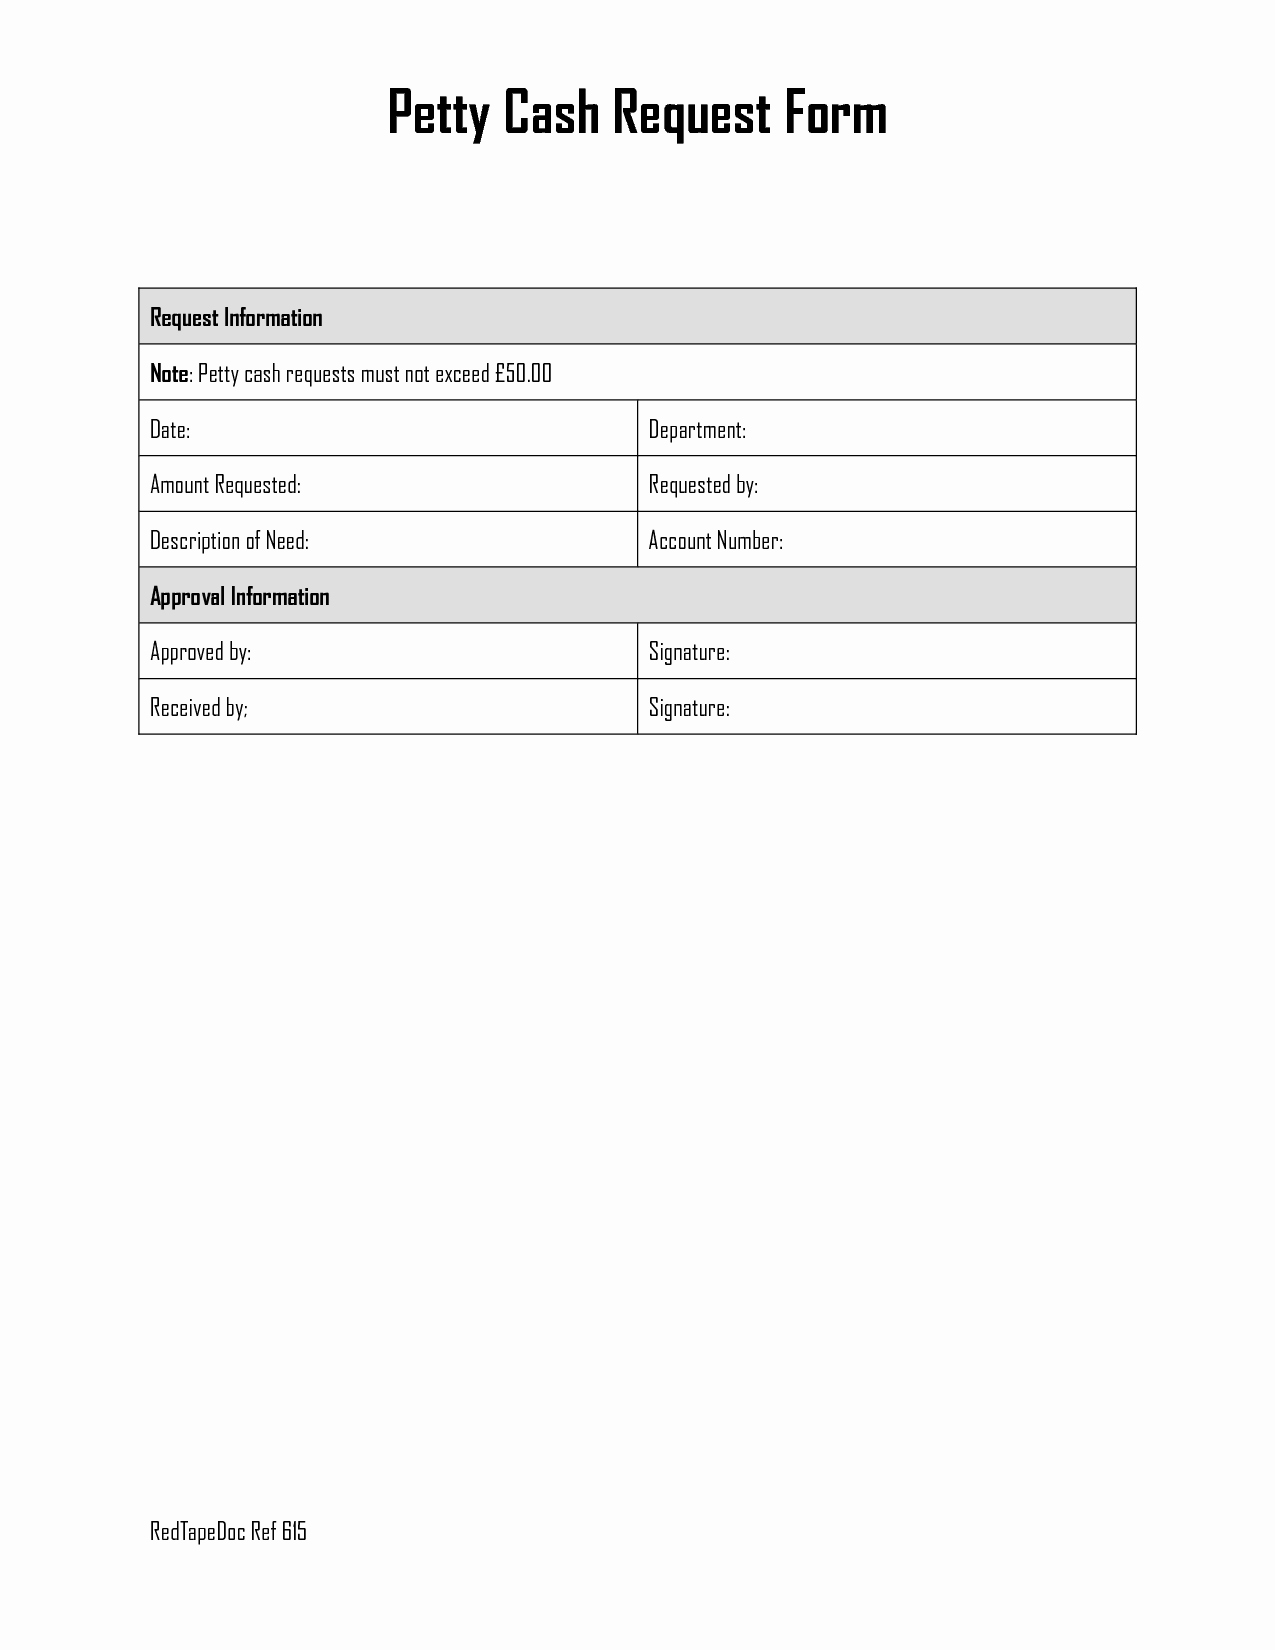 Petty Cash Request form Template Elegant Best S Of Petty Cash Replenishment form Template